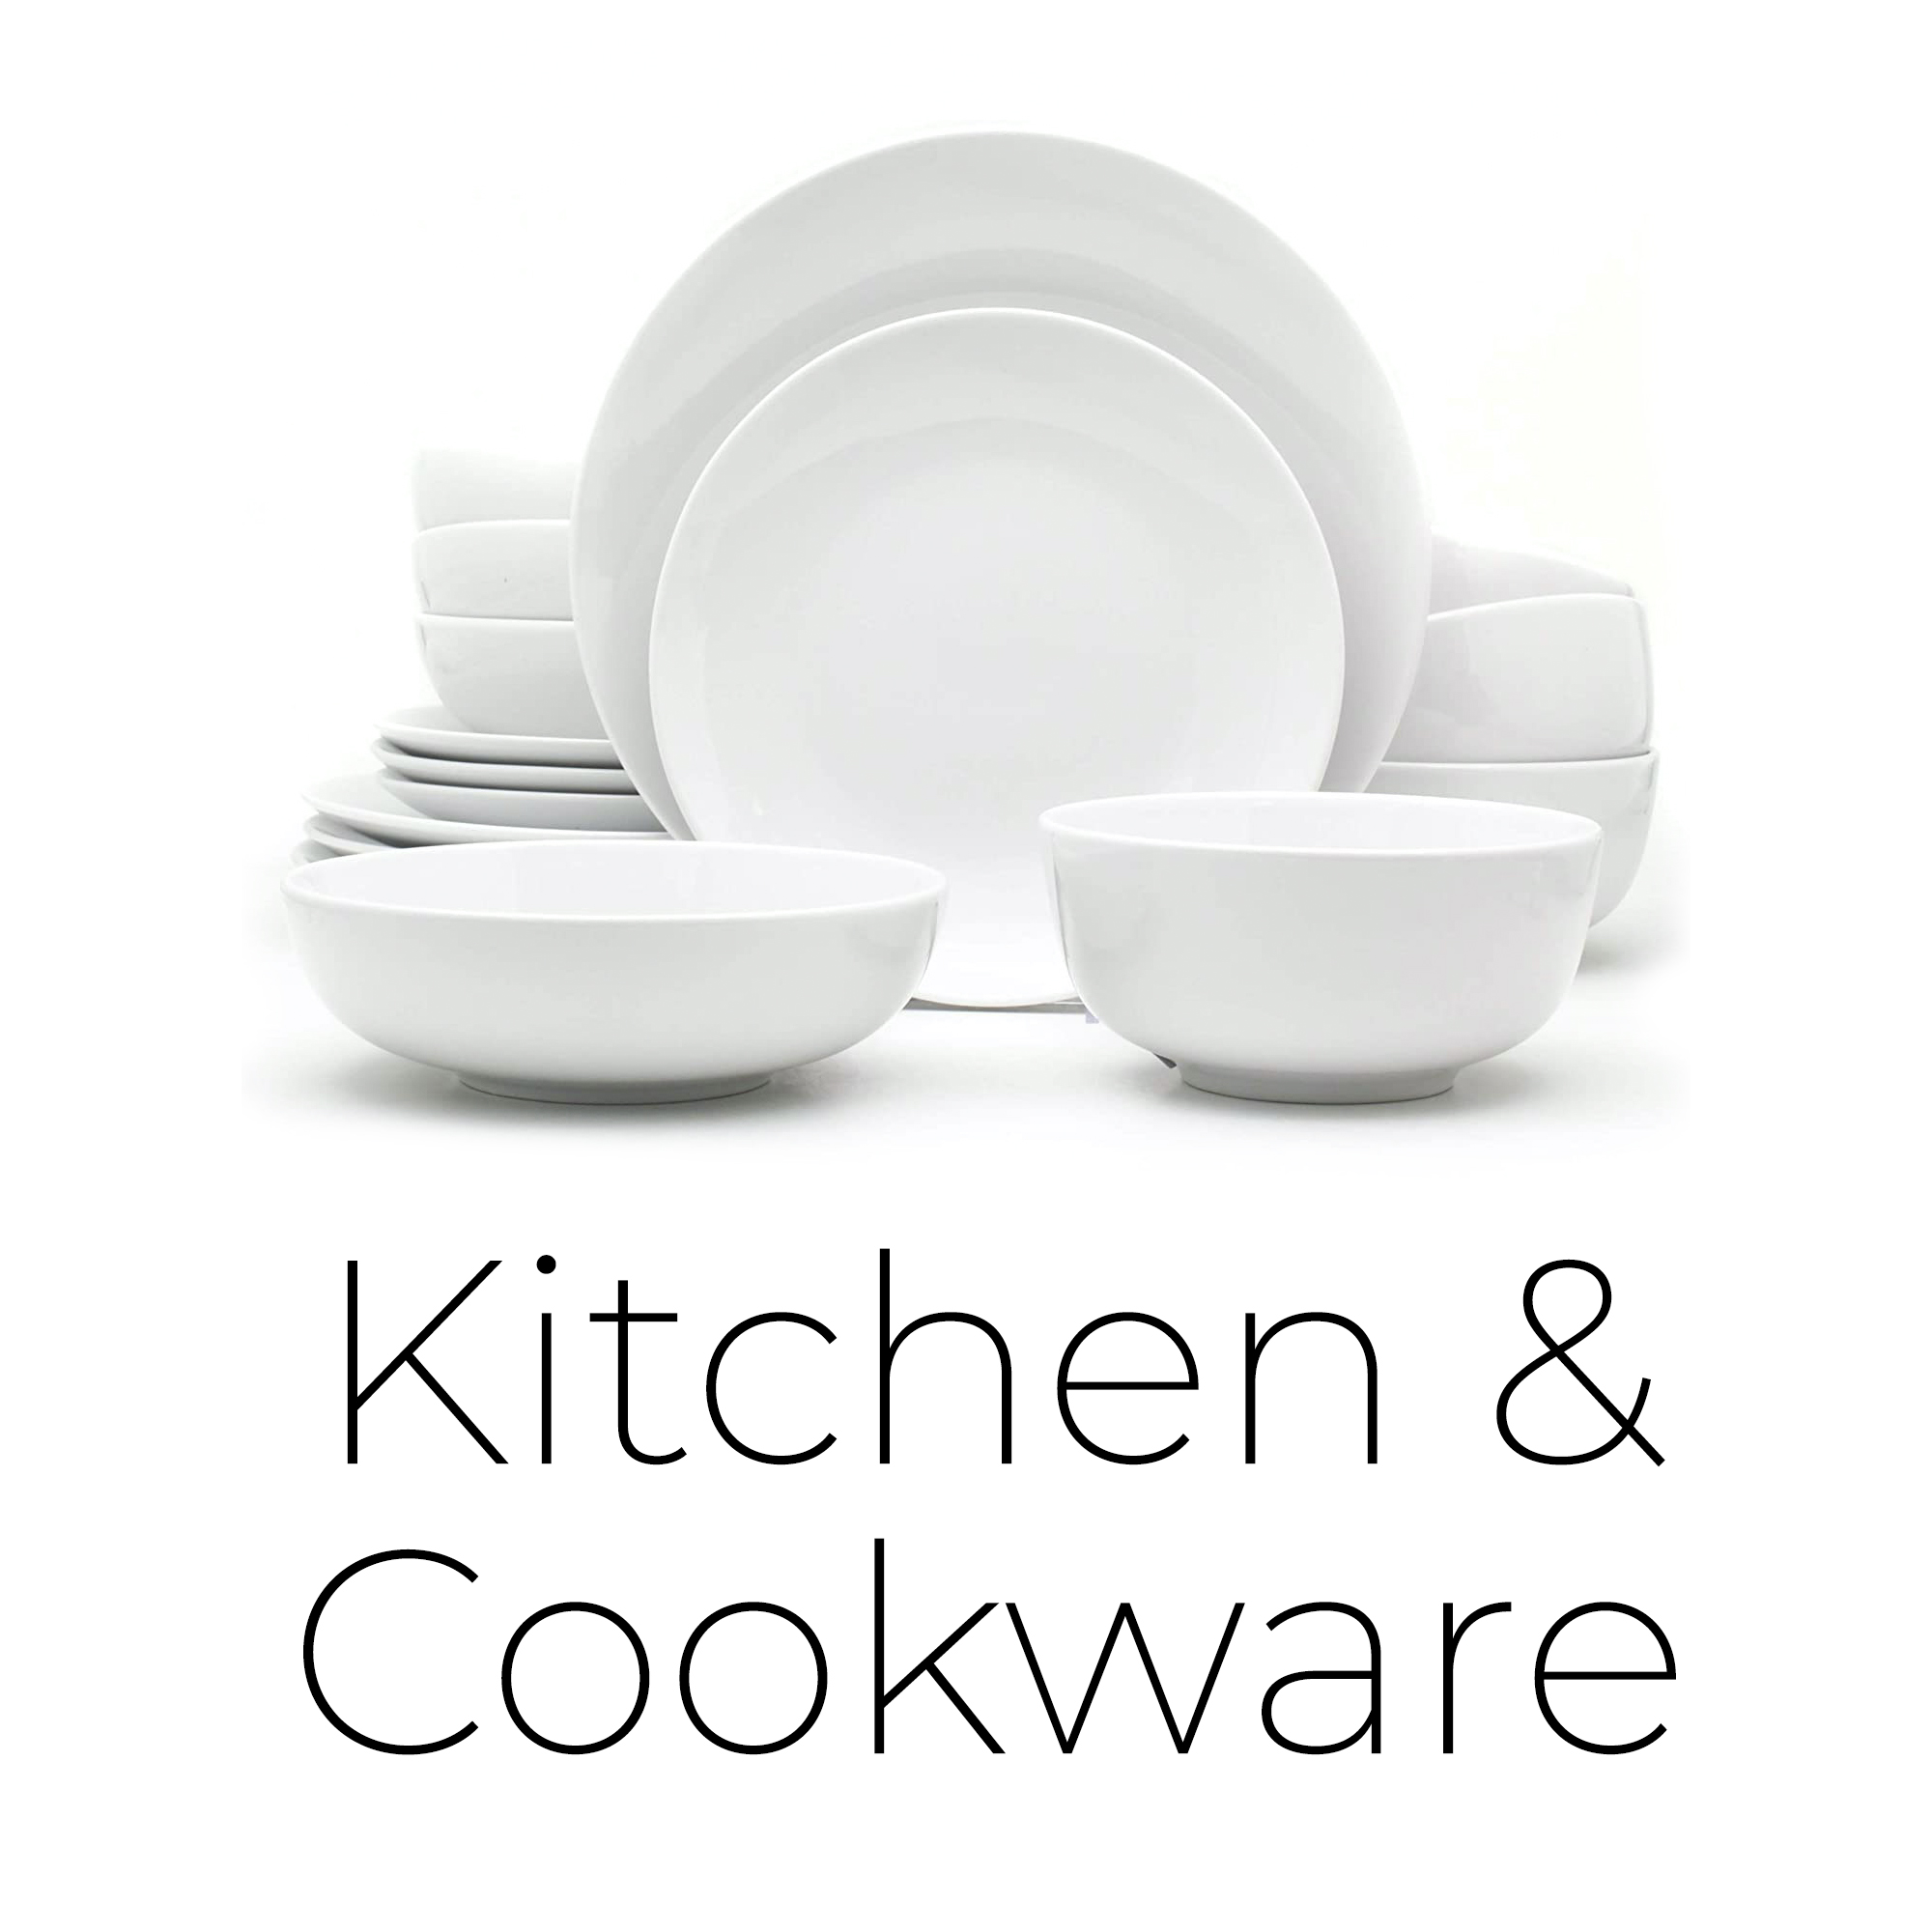 Shop Kitchen & cookware